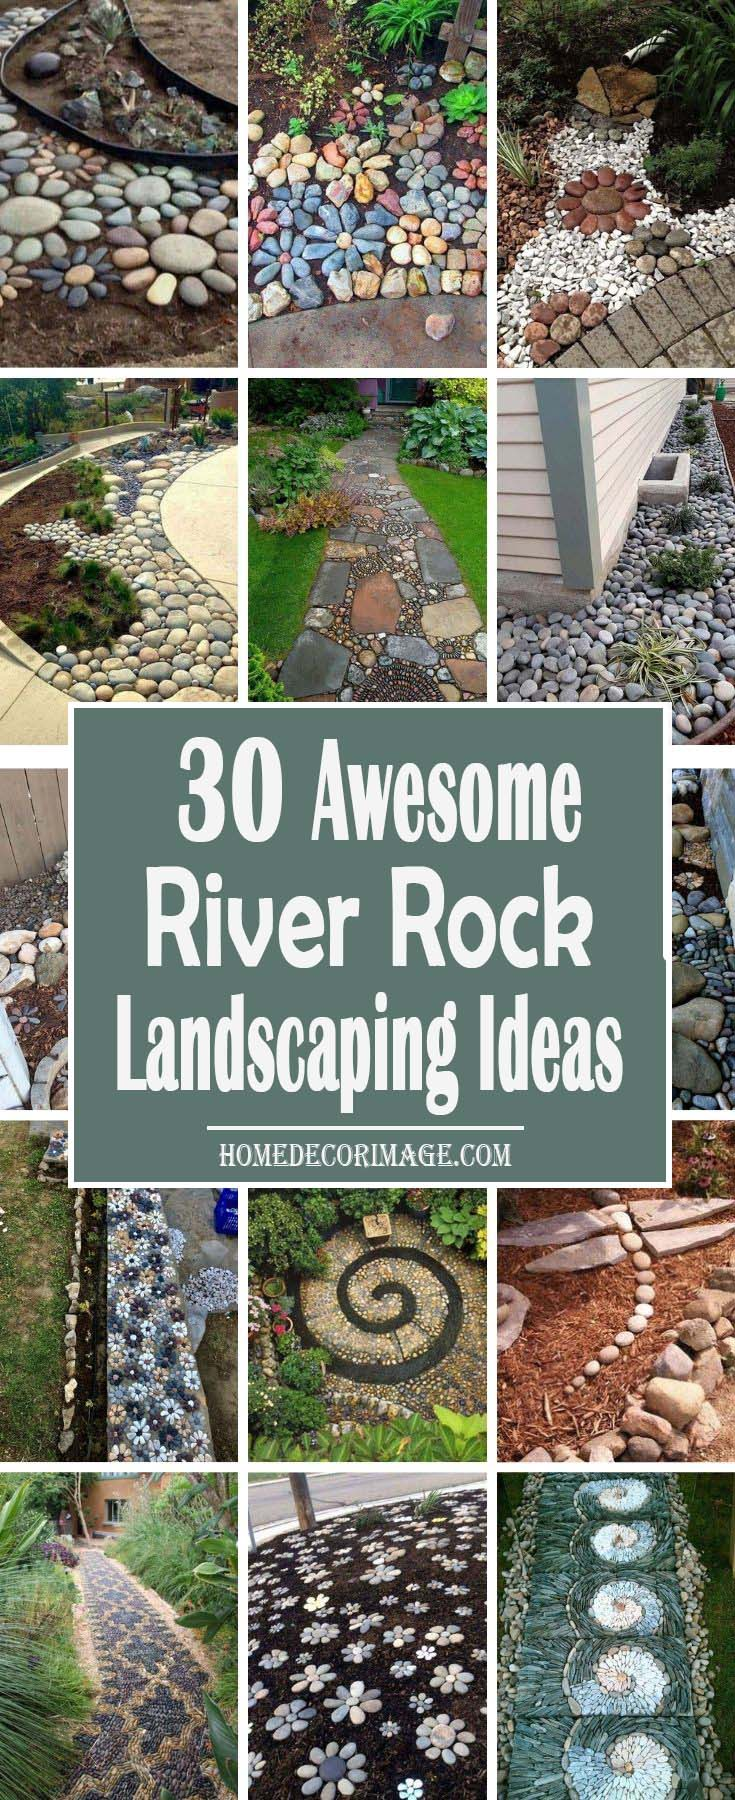 30 Awesome River Rock Landscaping Ideas To Add More Charm To Your Yard #riverrocklandscapingideas #homedecorimage